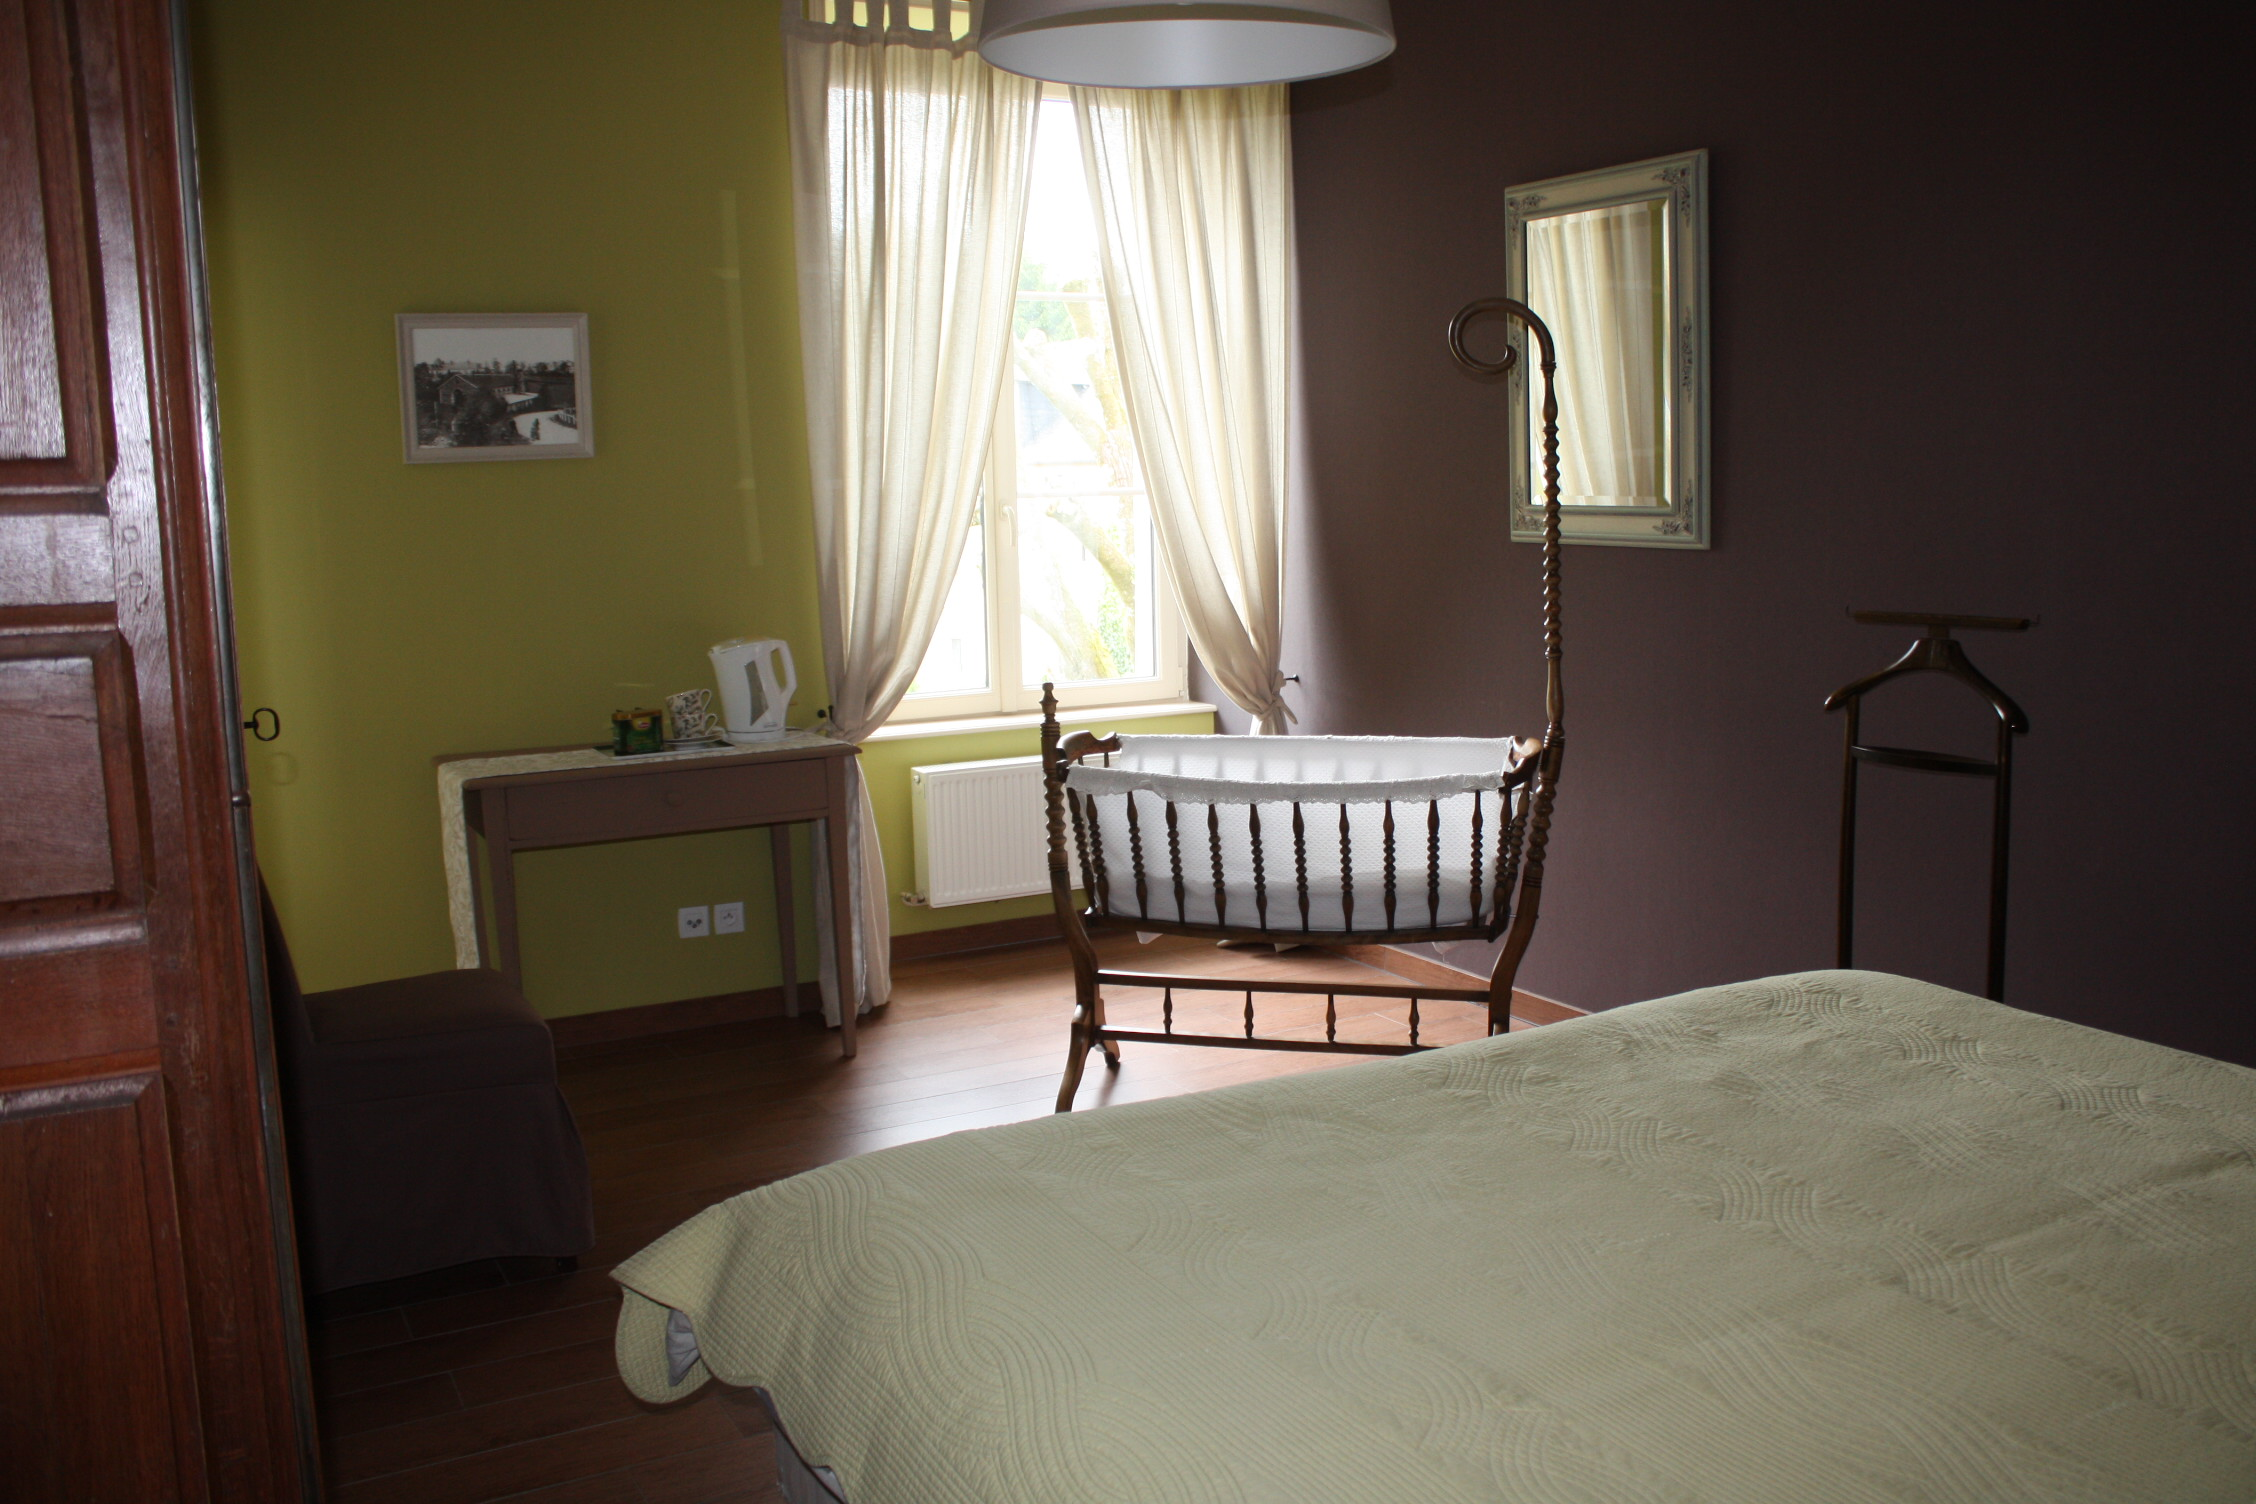 room-with-cot